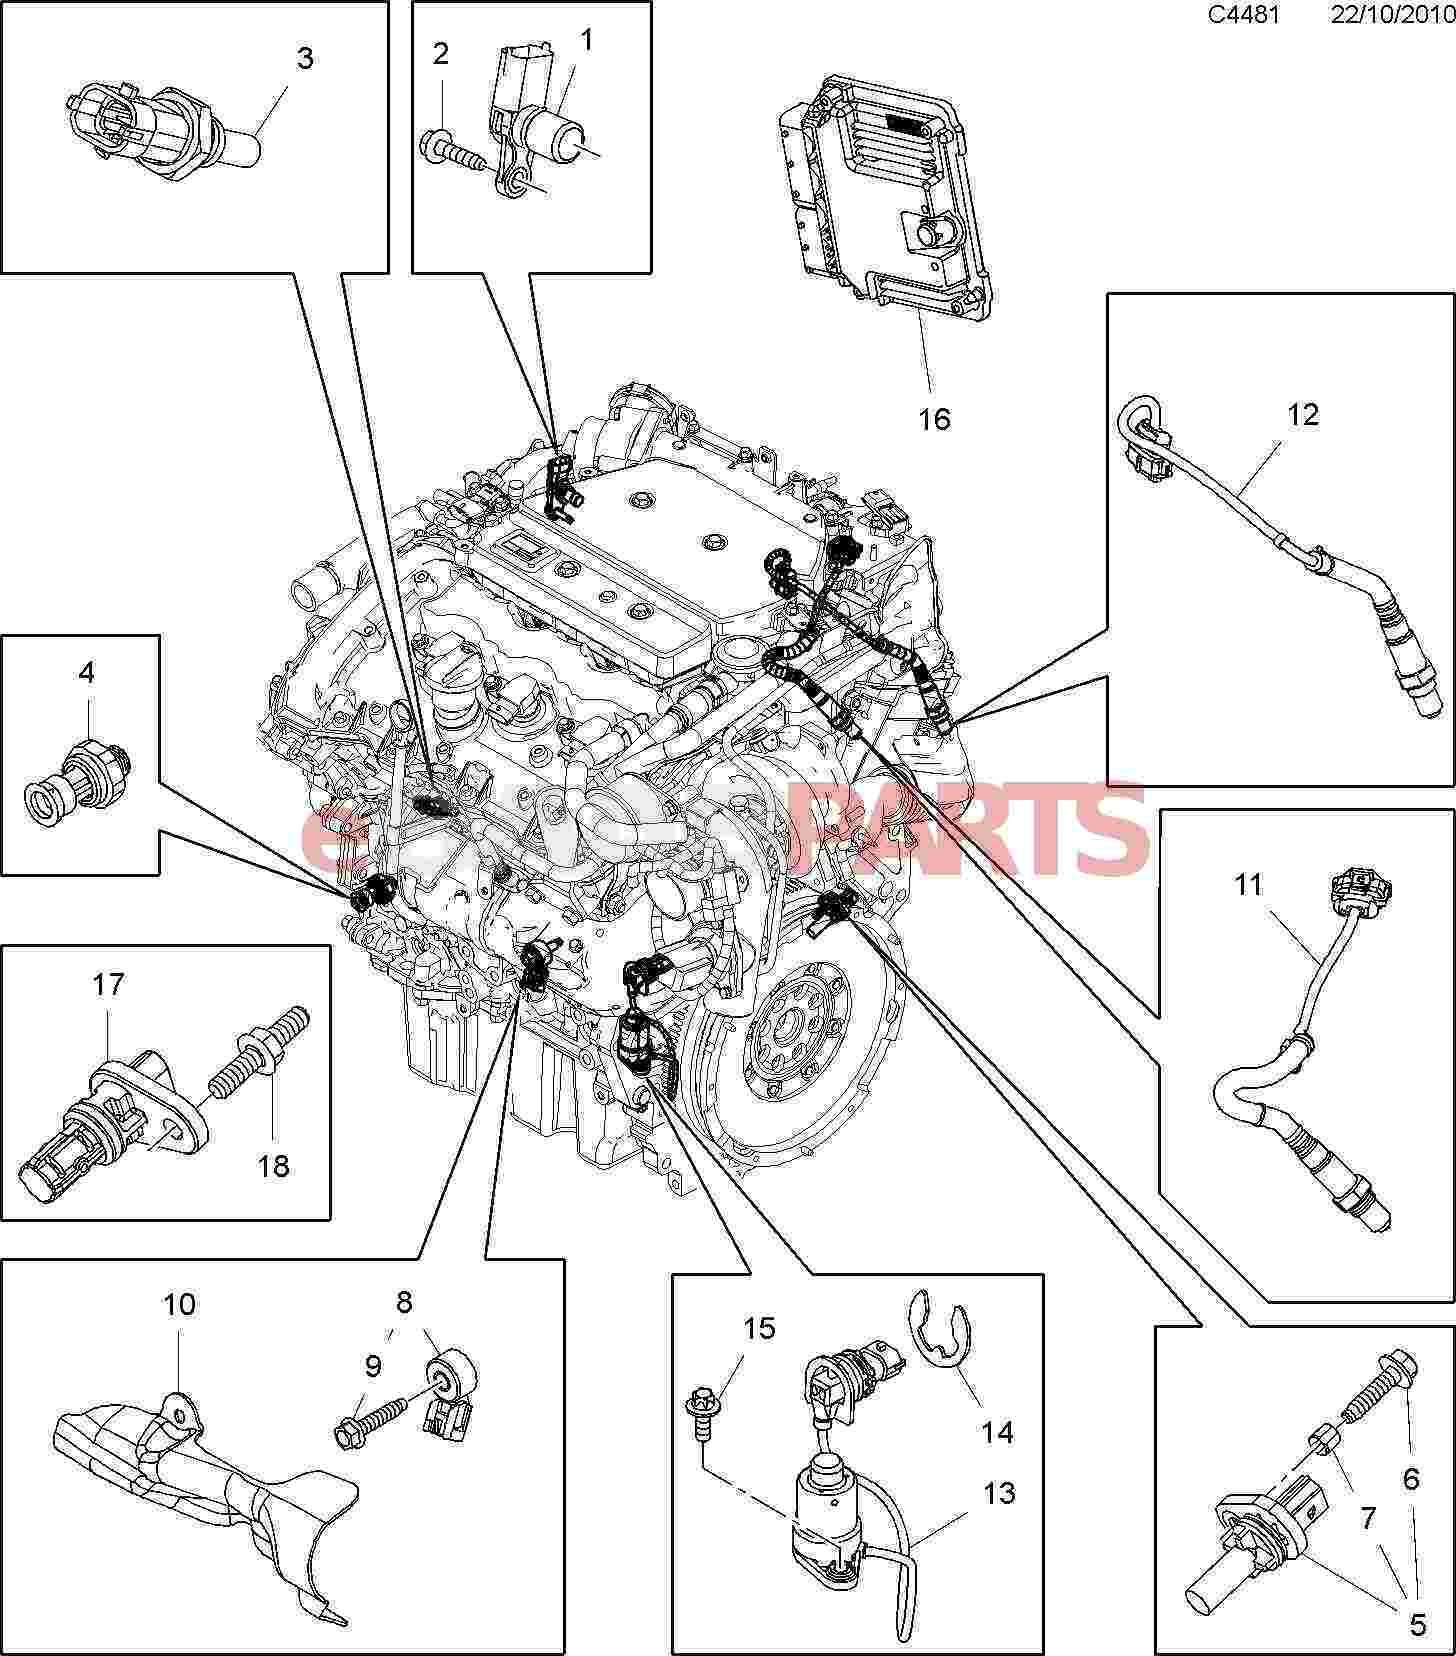 saab engine diagram schematics wiring diagrams u2022 rh schoosretailstores  com saab 9-3 engine bay